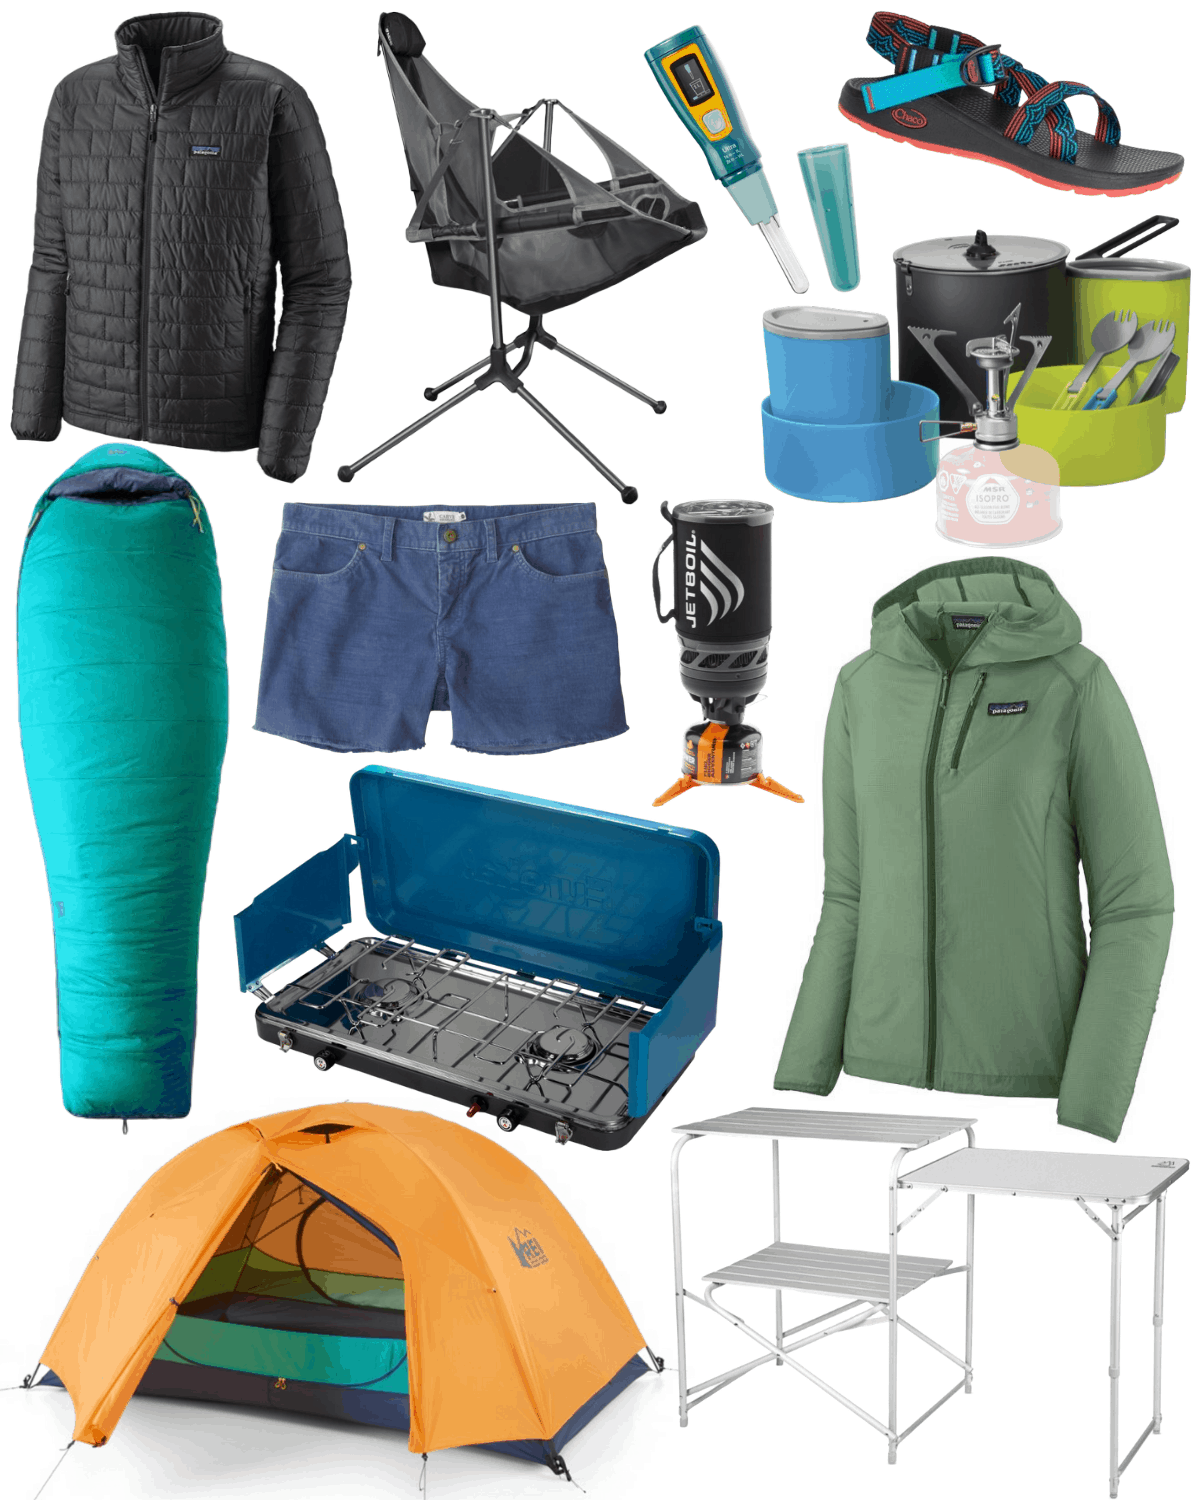 REI Memorial Day Sale - Get Everything You Need For Summer